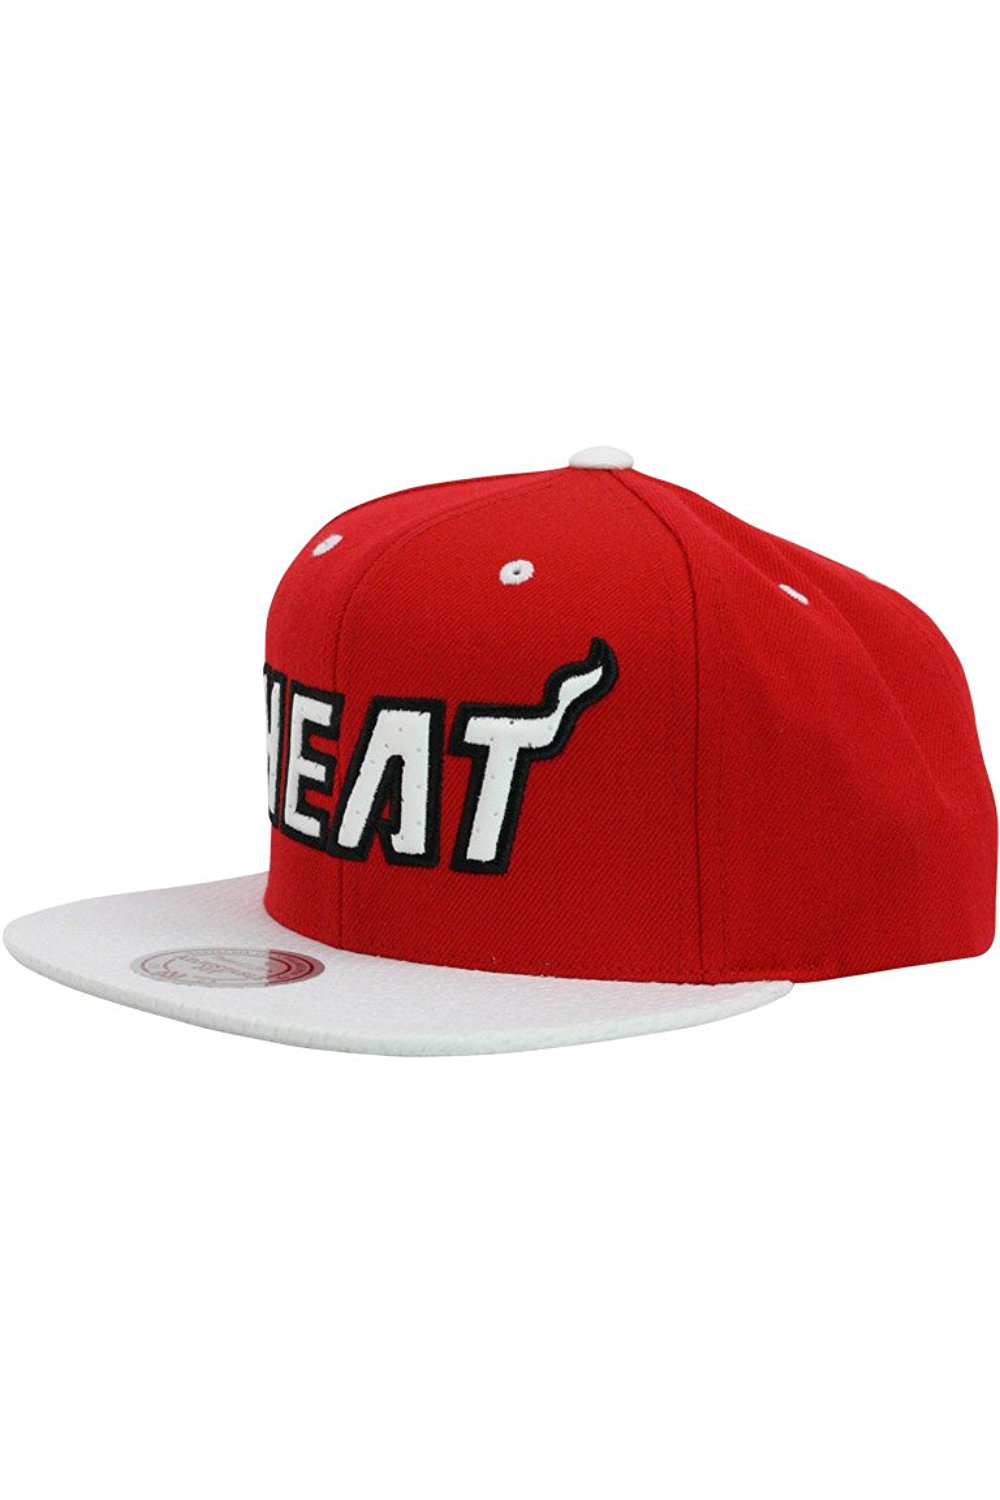 a6eeacbe2ab Get Quotations · Mitchell Ness Miami Heat Red Alert Structured Fit Snapback  Unisex   Va91Z Style  VA91Z-004